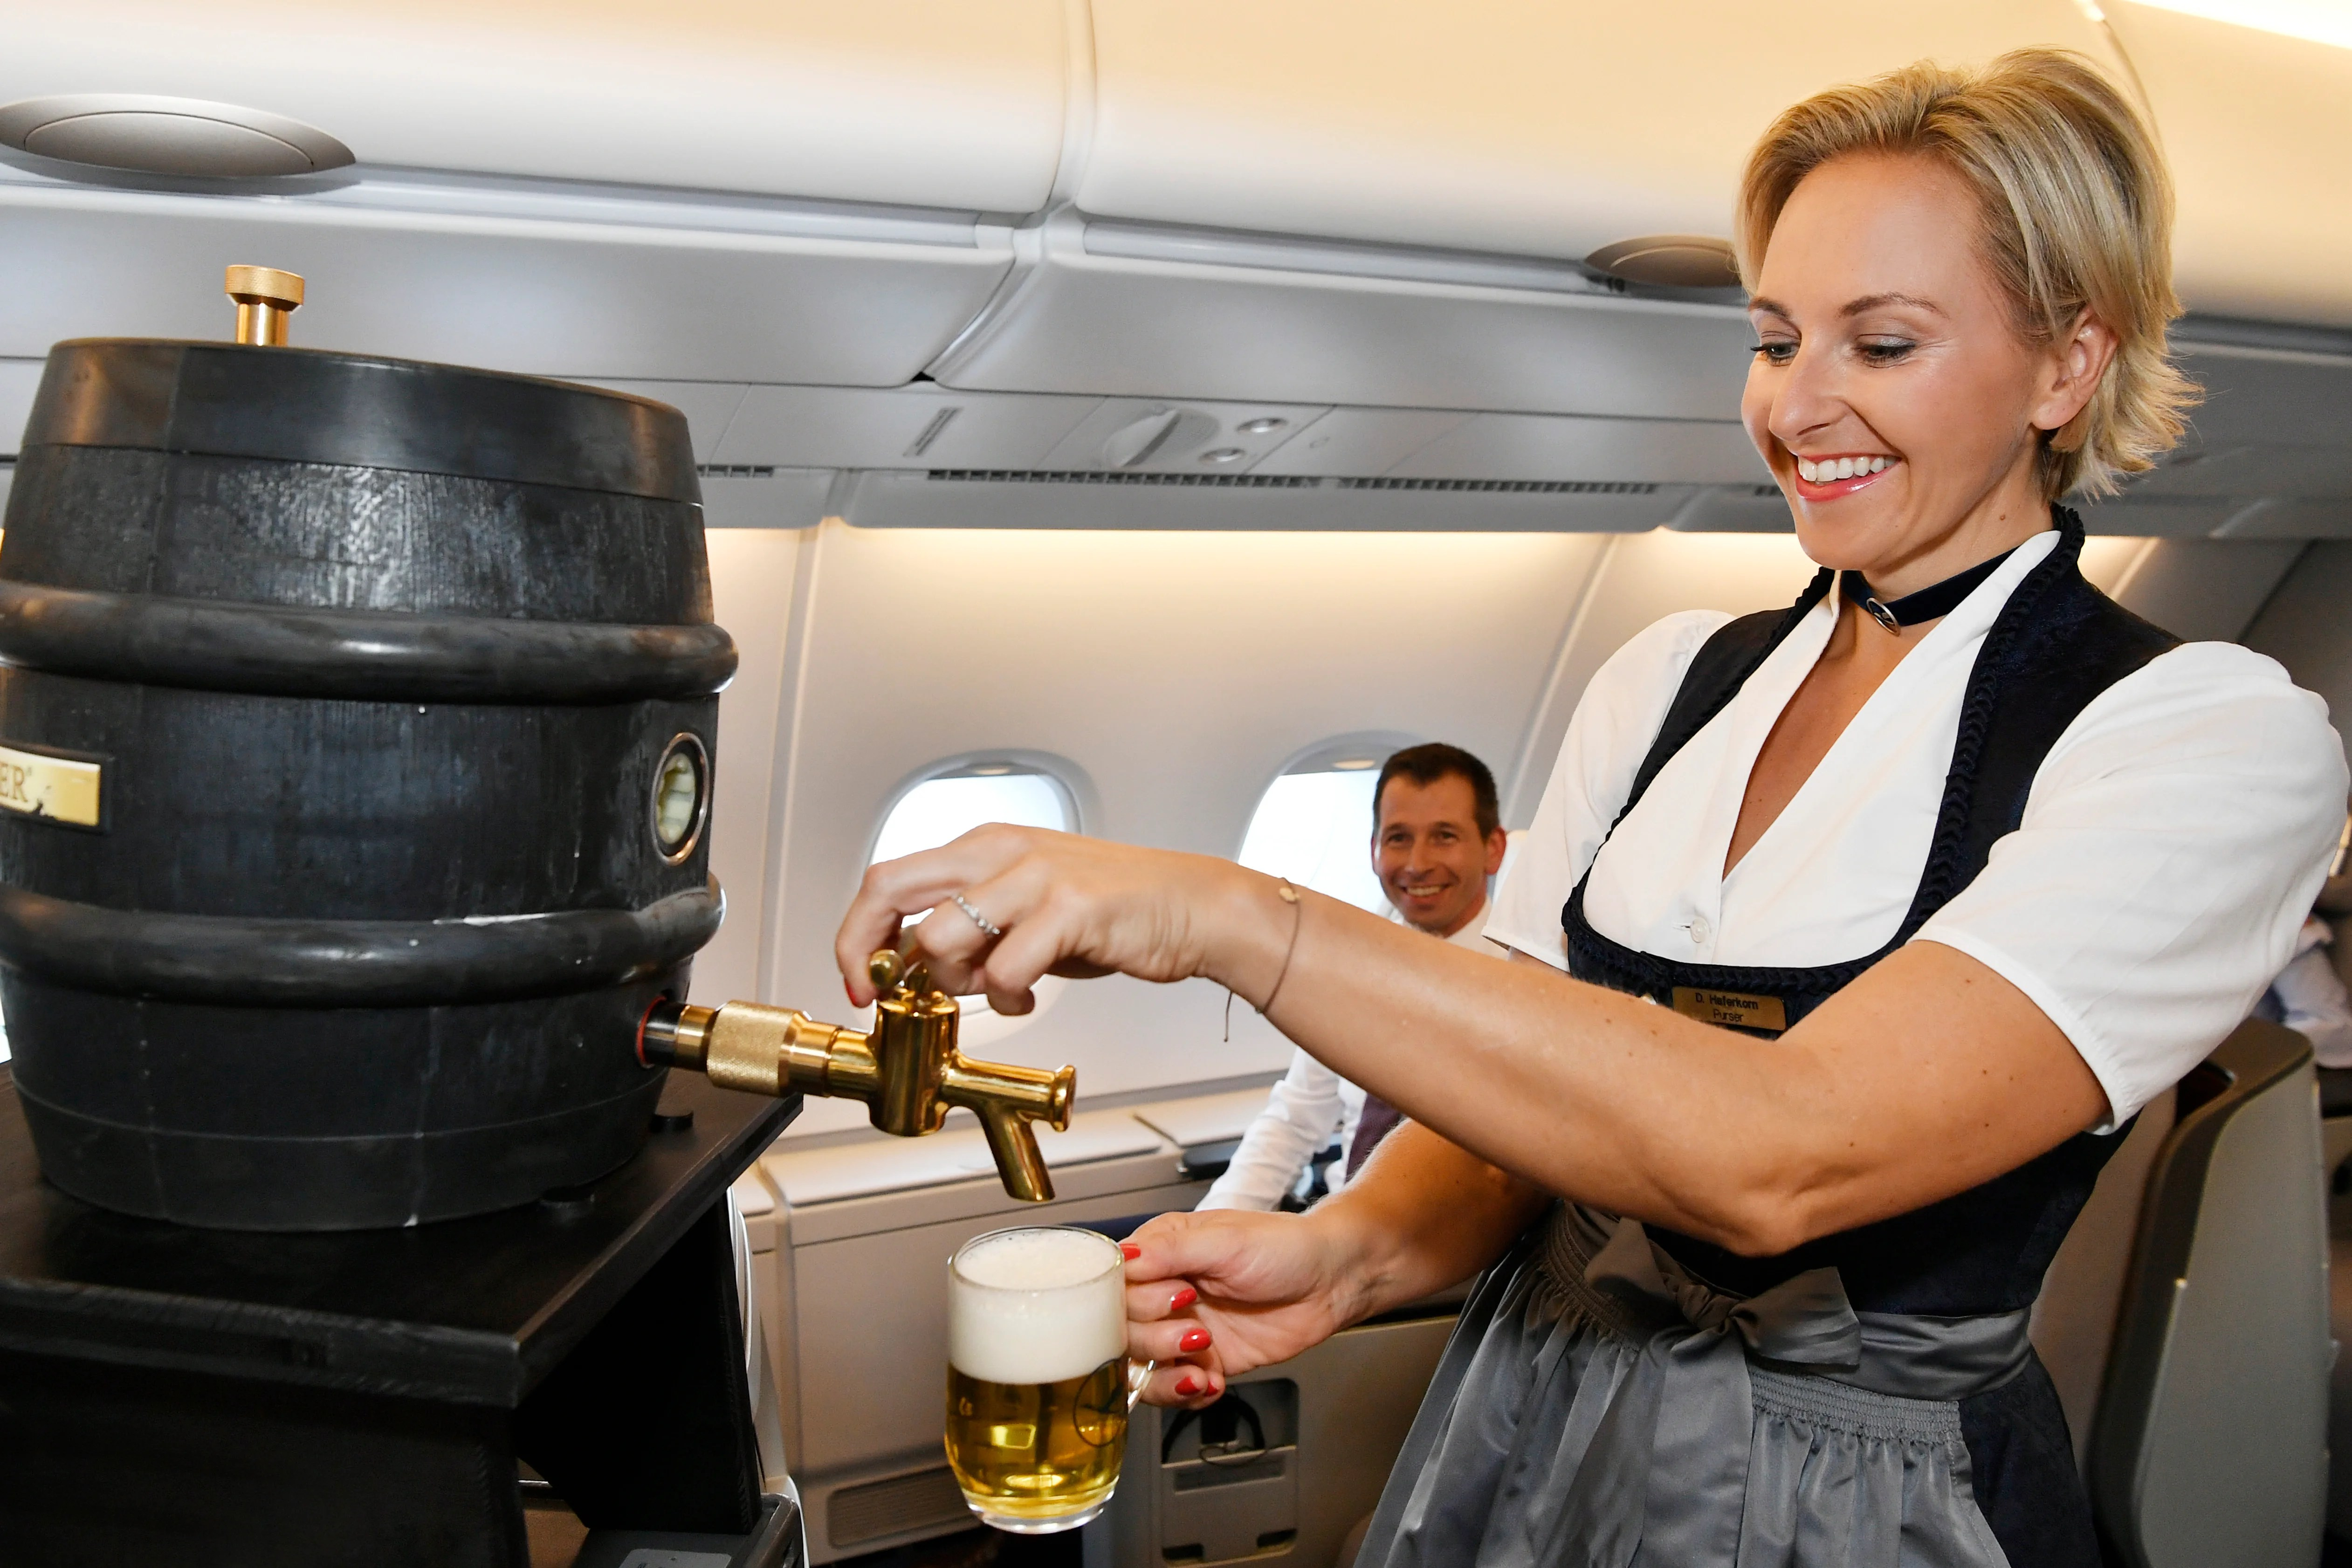 Lufthansa Is Decking out Flights in Oktoberfest Kegs and Garb